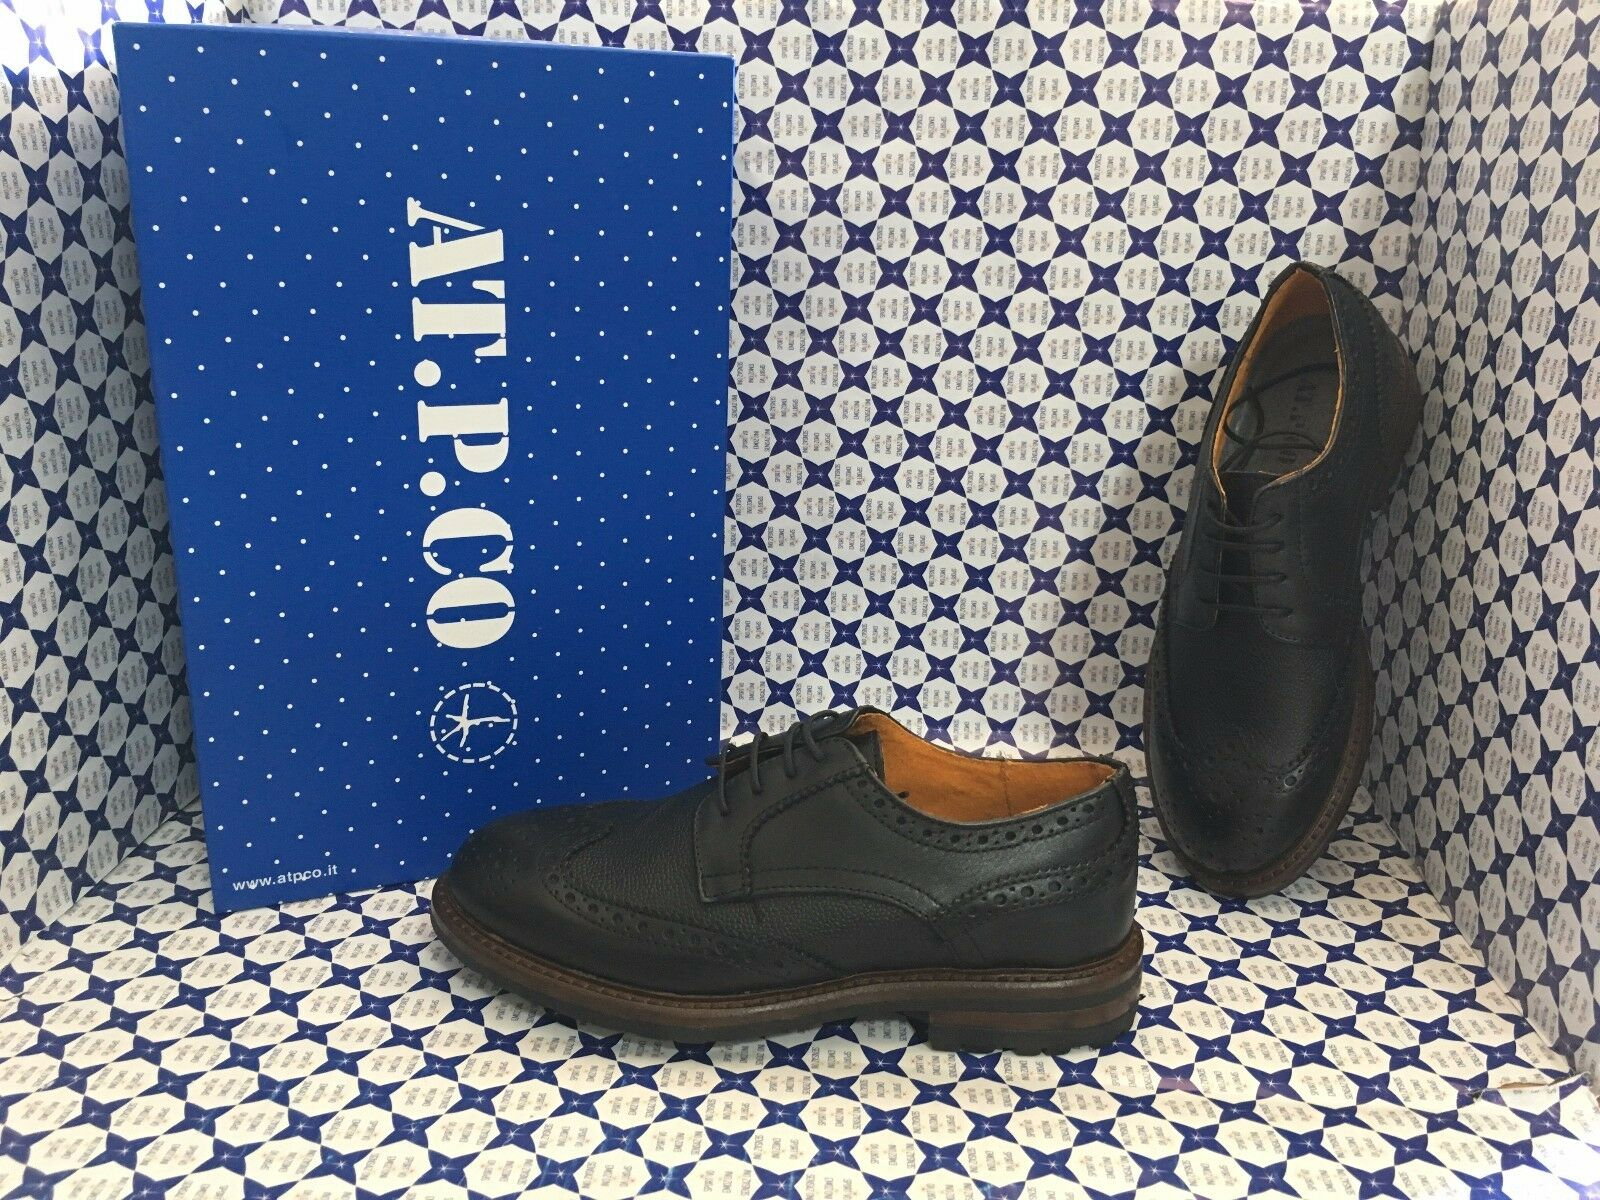 zapatos AT P CO hombres - Derby Stringata Punta Coda di Rondine - negro - S18A02